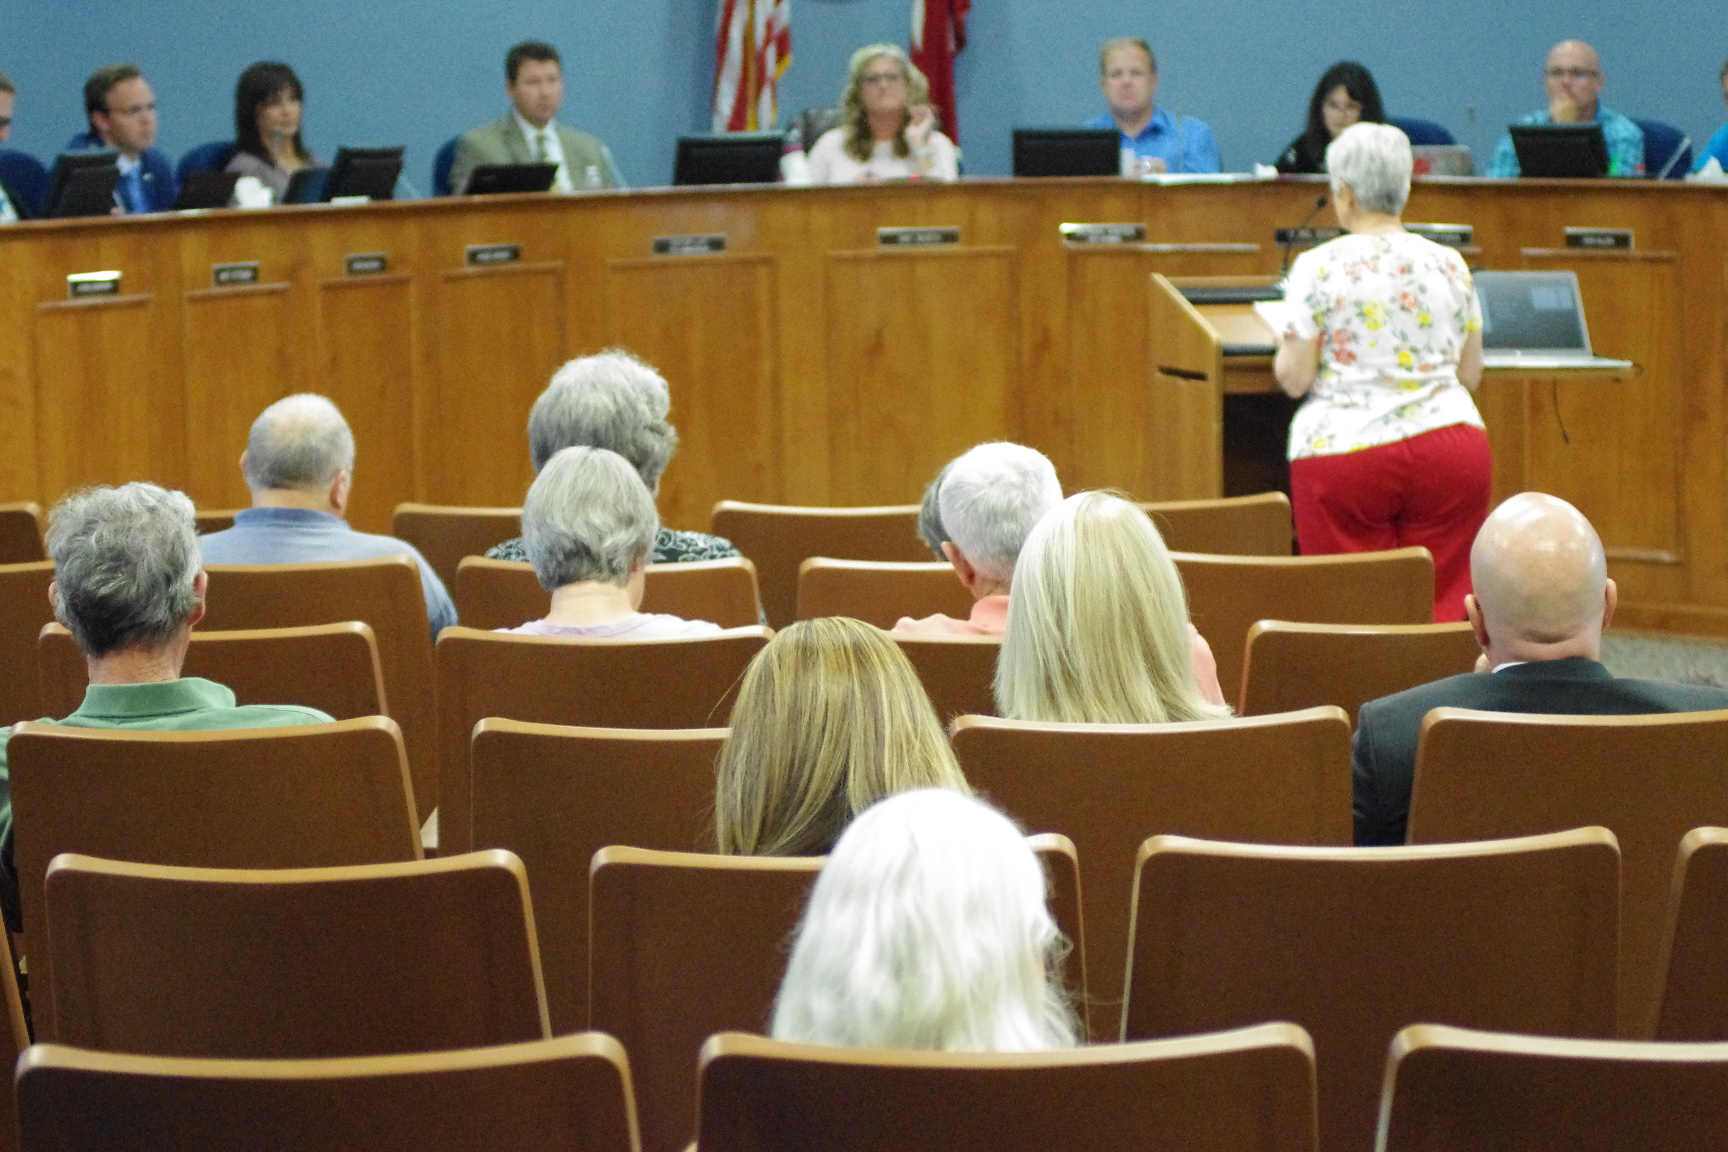 Spring Hill nonprofits make their case to city leaders after axed funding